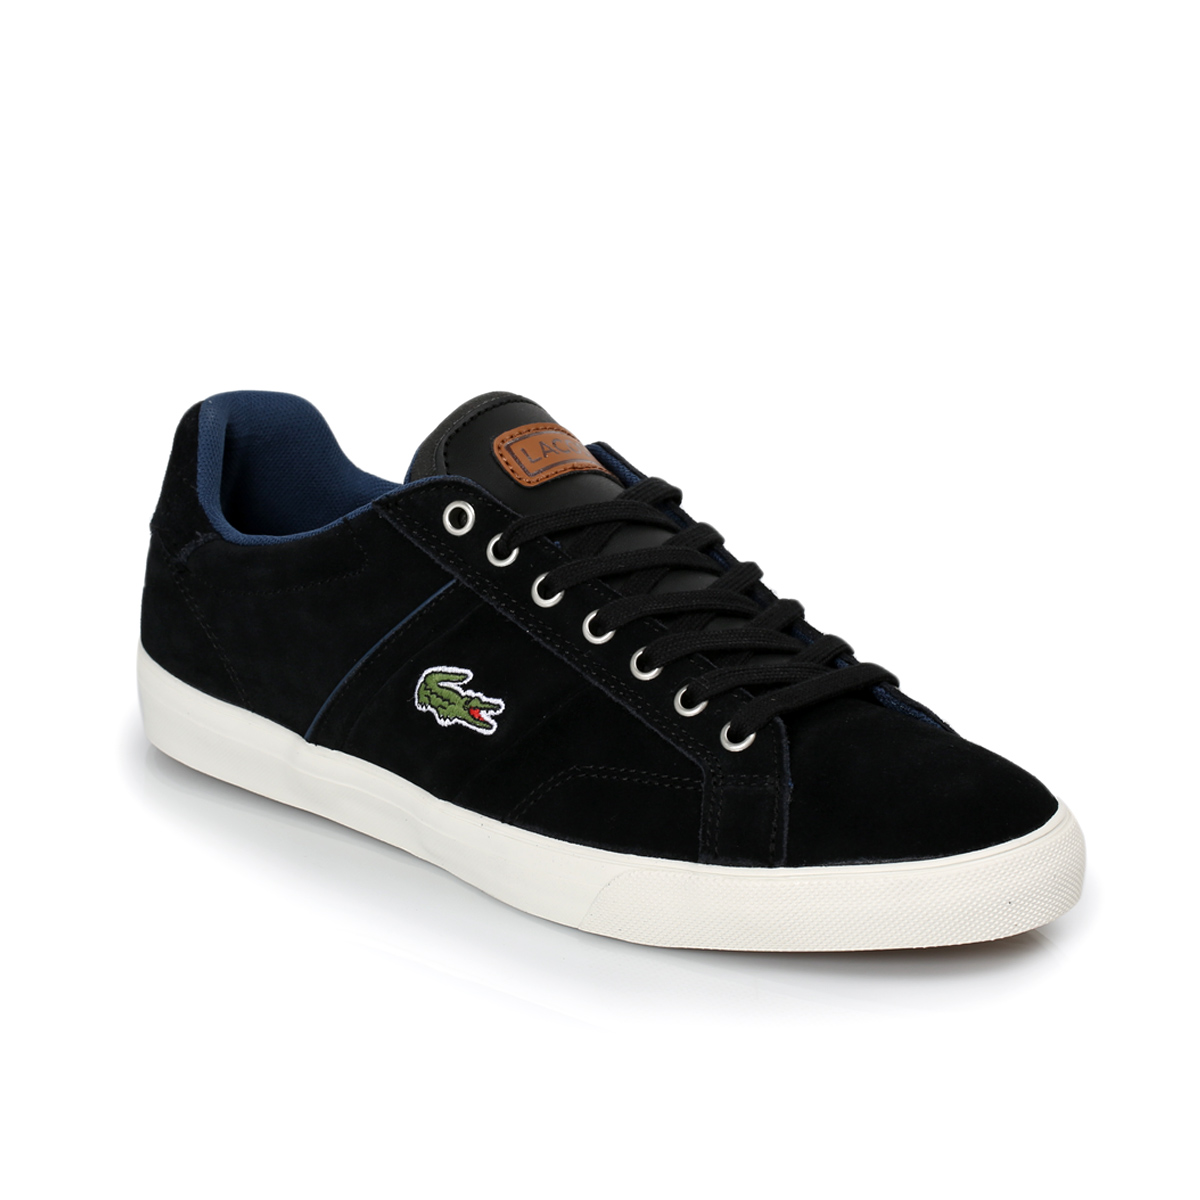 Lacoste Black Flat Shoes